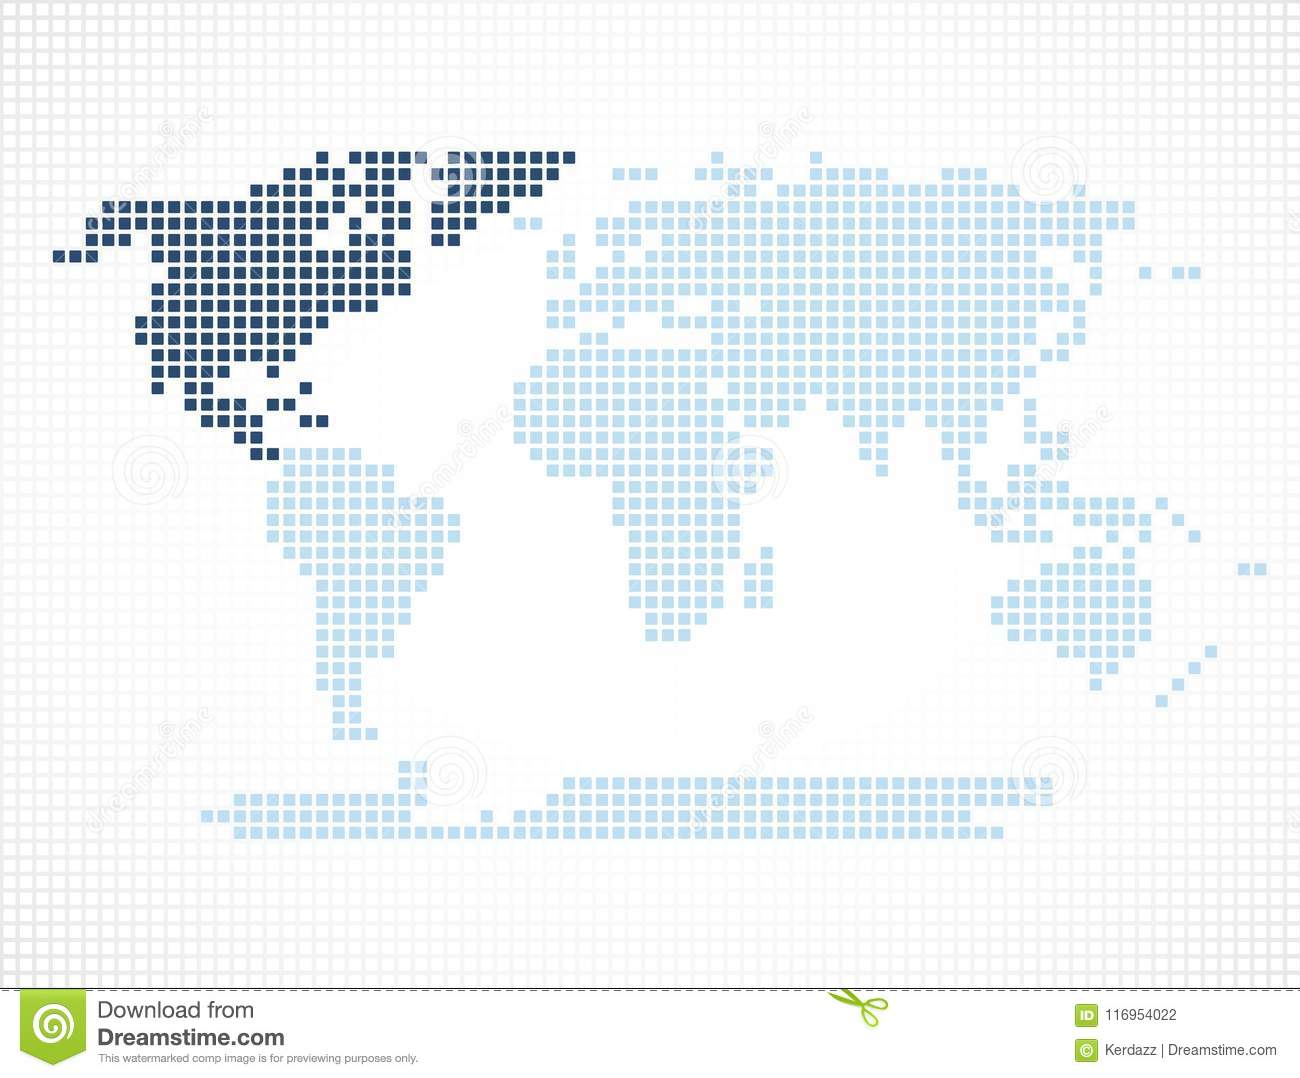 North america continent on the world map stock vector illustration world map with highlighted continent of north america gumiabroncs Images